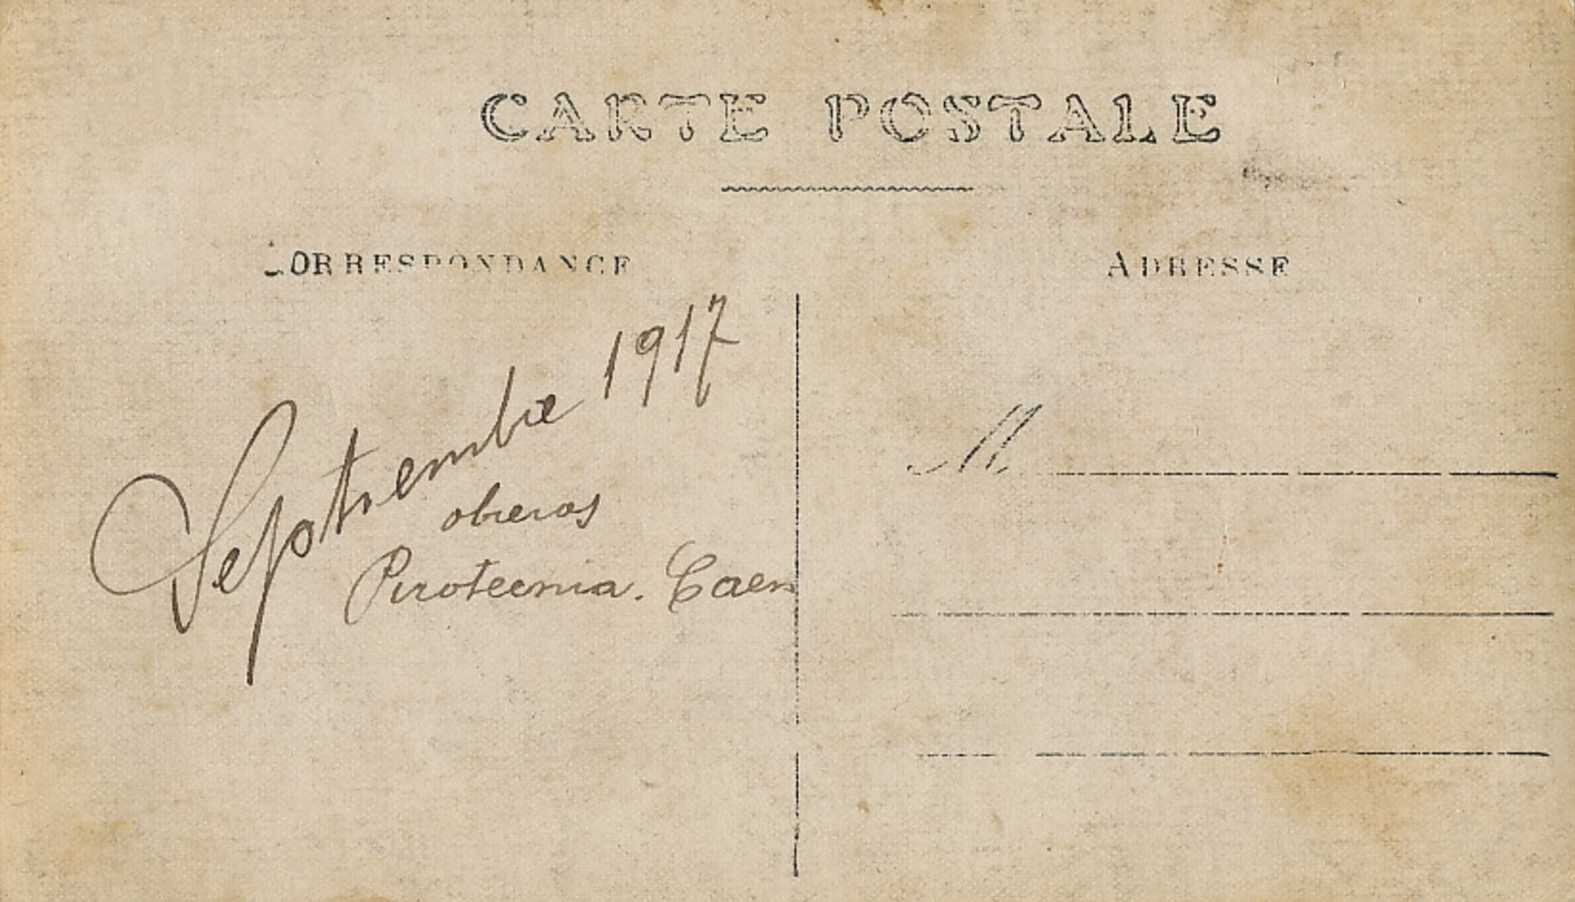 Caen, Pyrotechnie, ouvriers, septembre 1917, verso